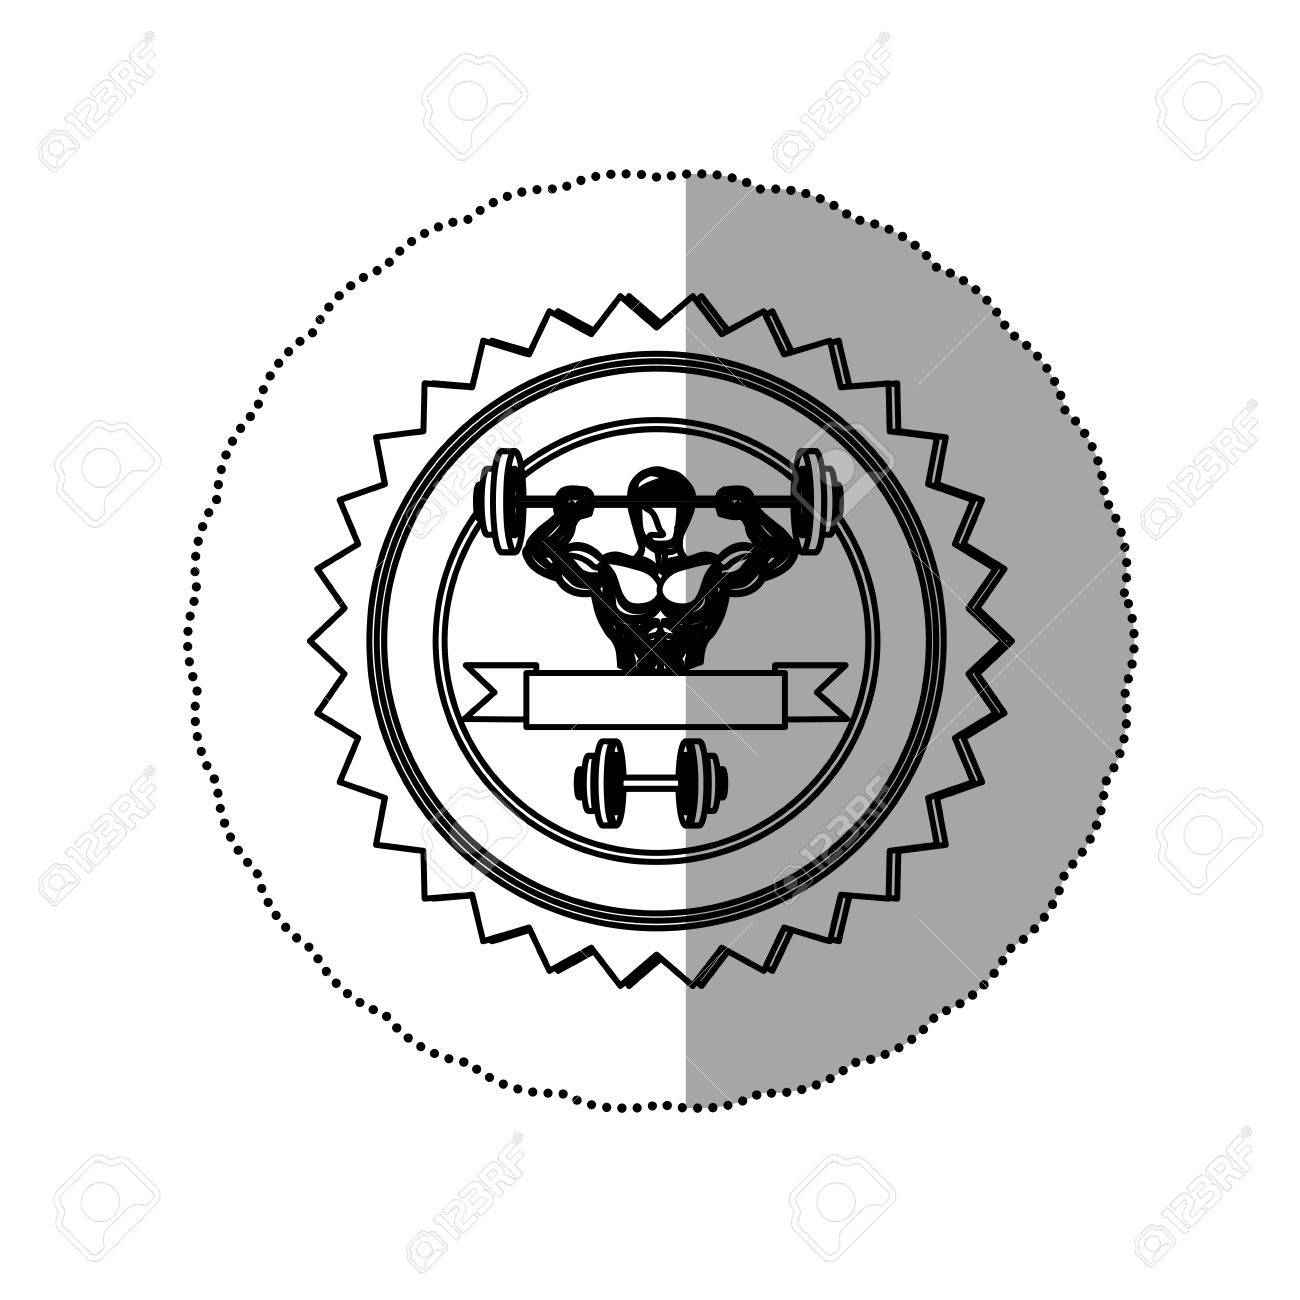 Sticker Contour Stamp Border With Muscle Man Lifting A Disc Weights And Label Dumbbell Vector